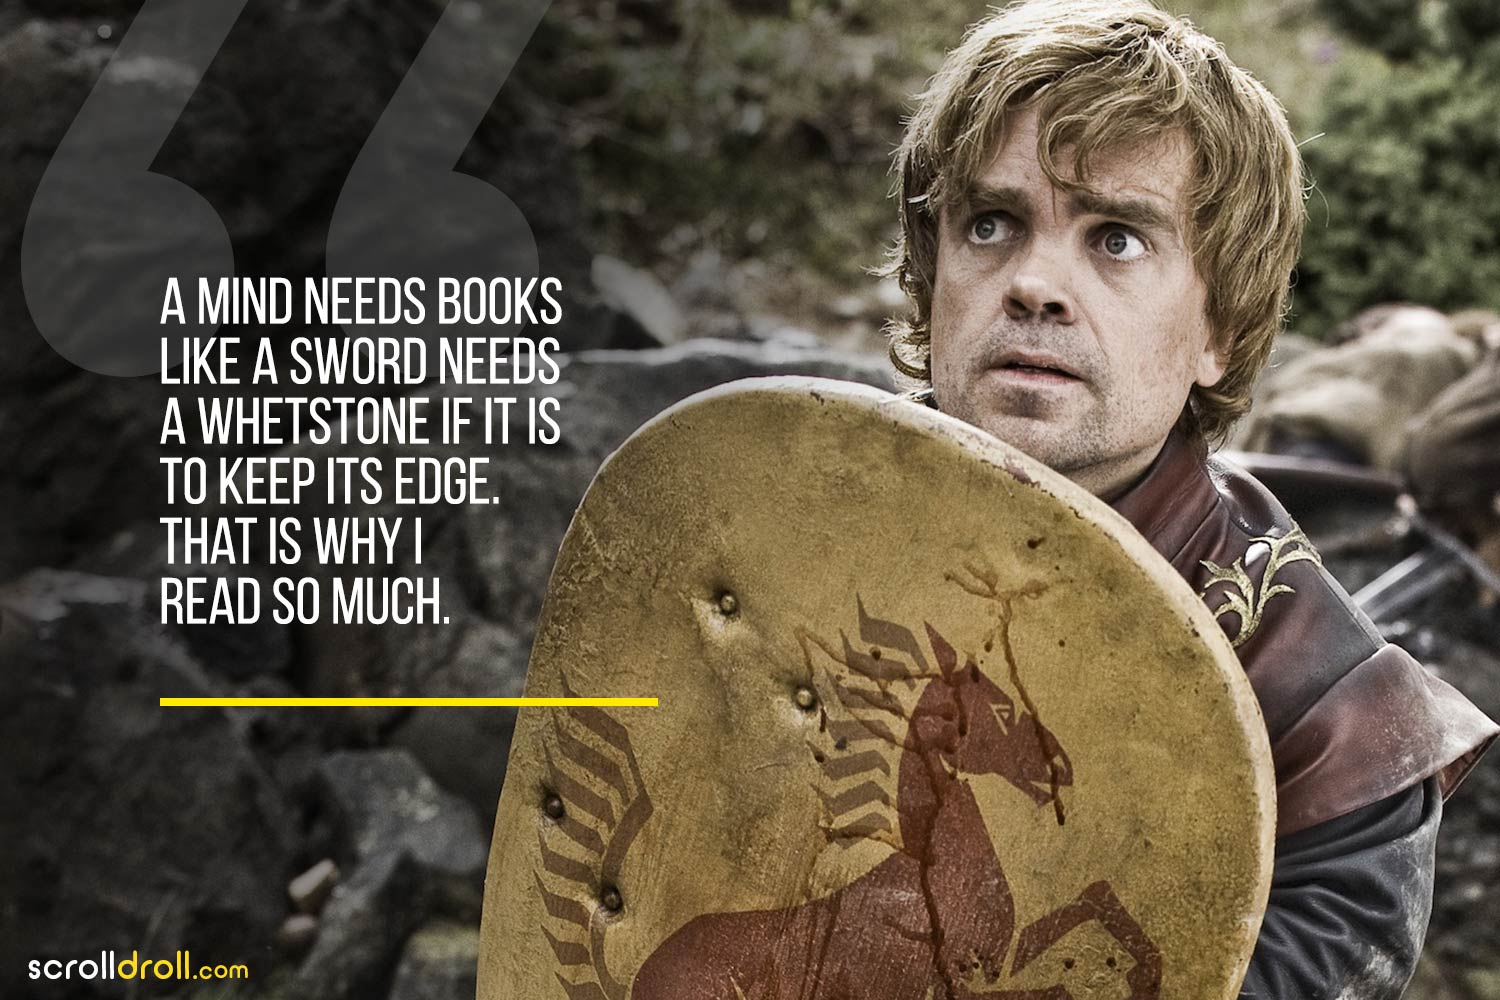 Tyrion-A mind needs books like a sword needs a whetstone if it is to keep its edge,that is why i read so much